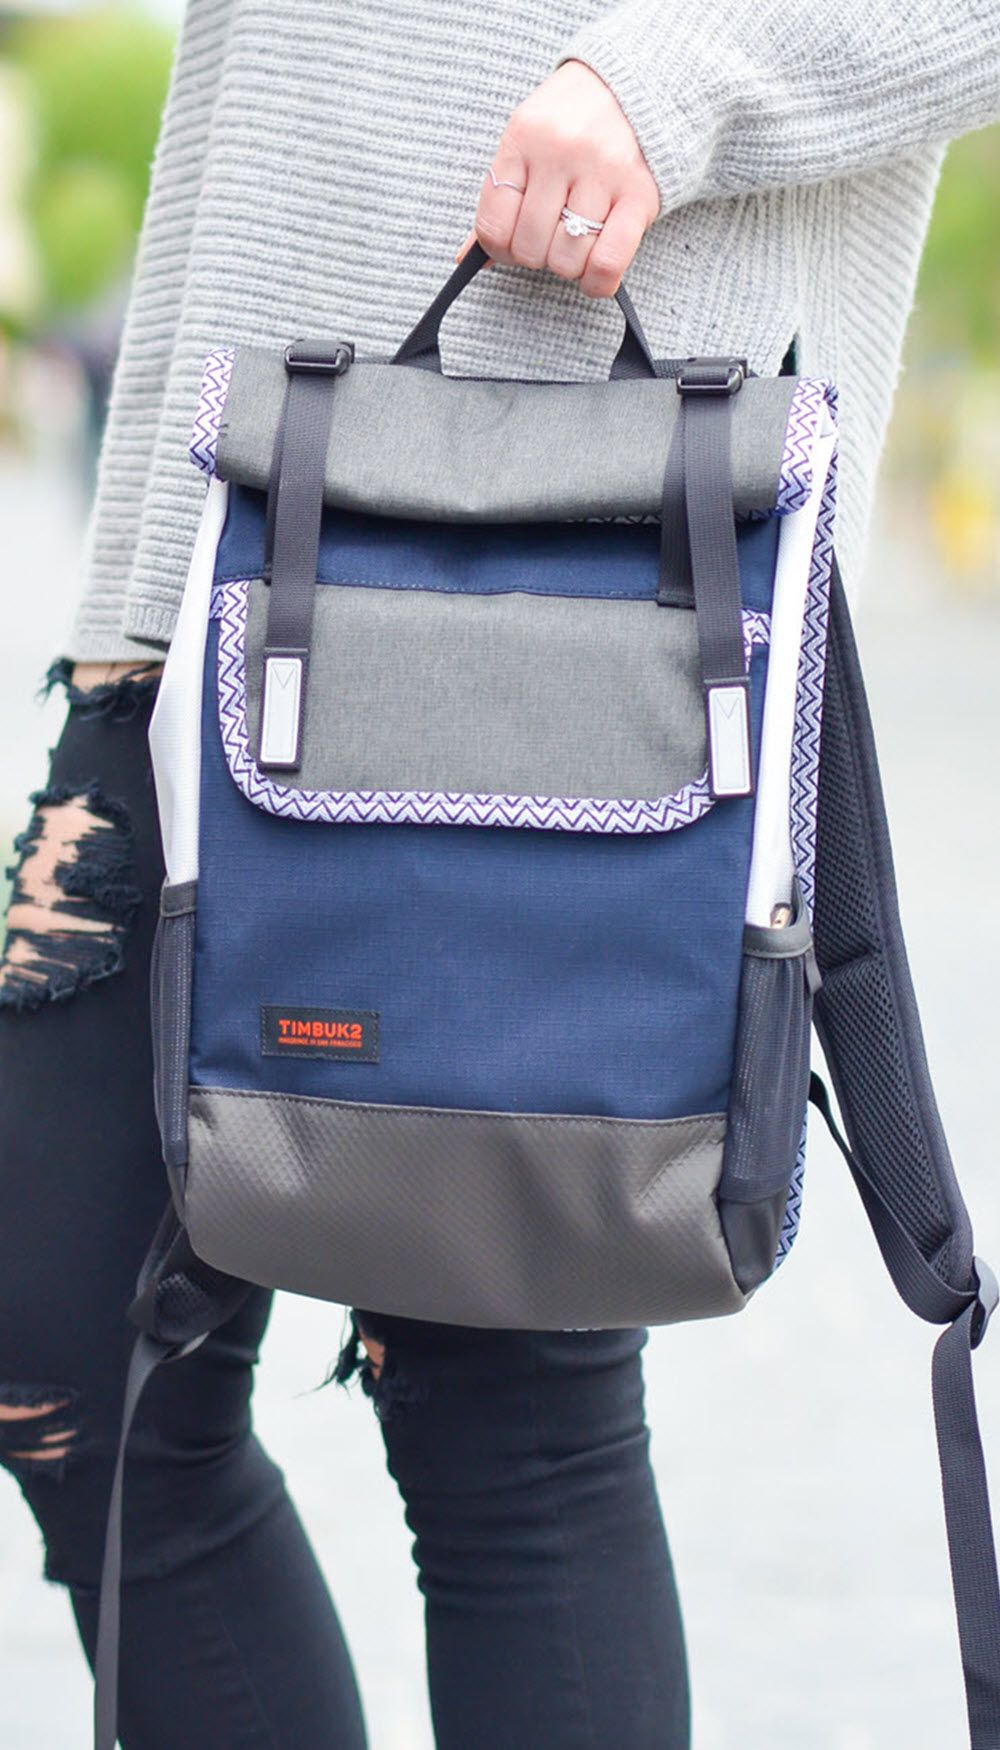 e56153f8b986 Mini Timbuk2 Prospect Backpack - Best Small Backpack for Day Hikes Review